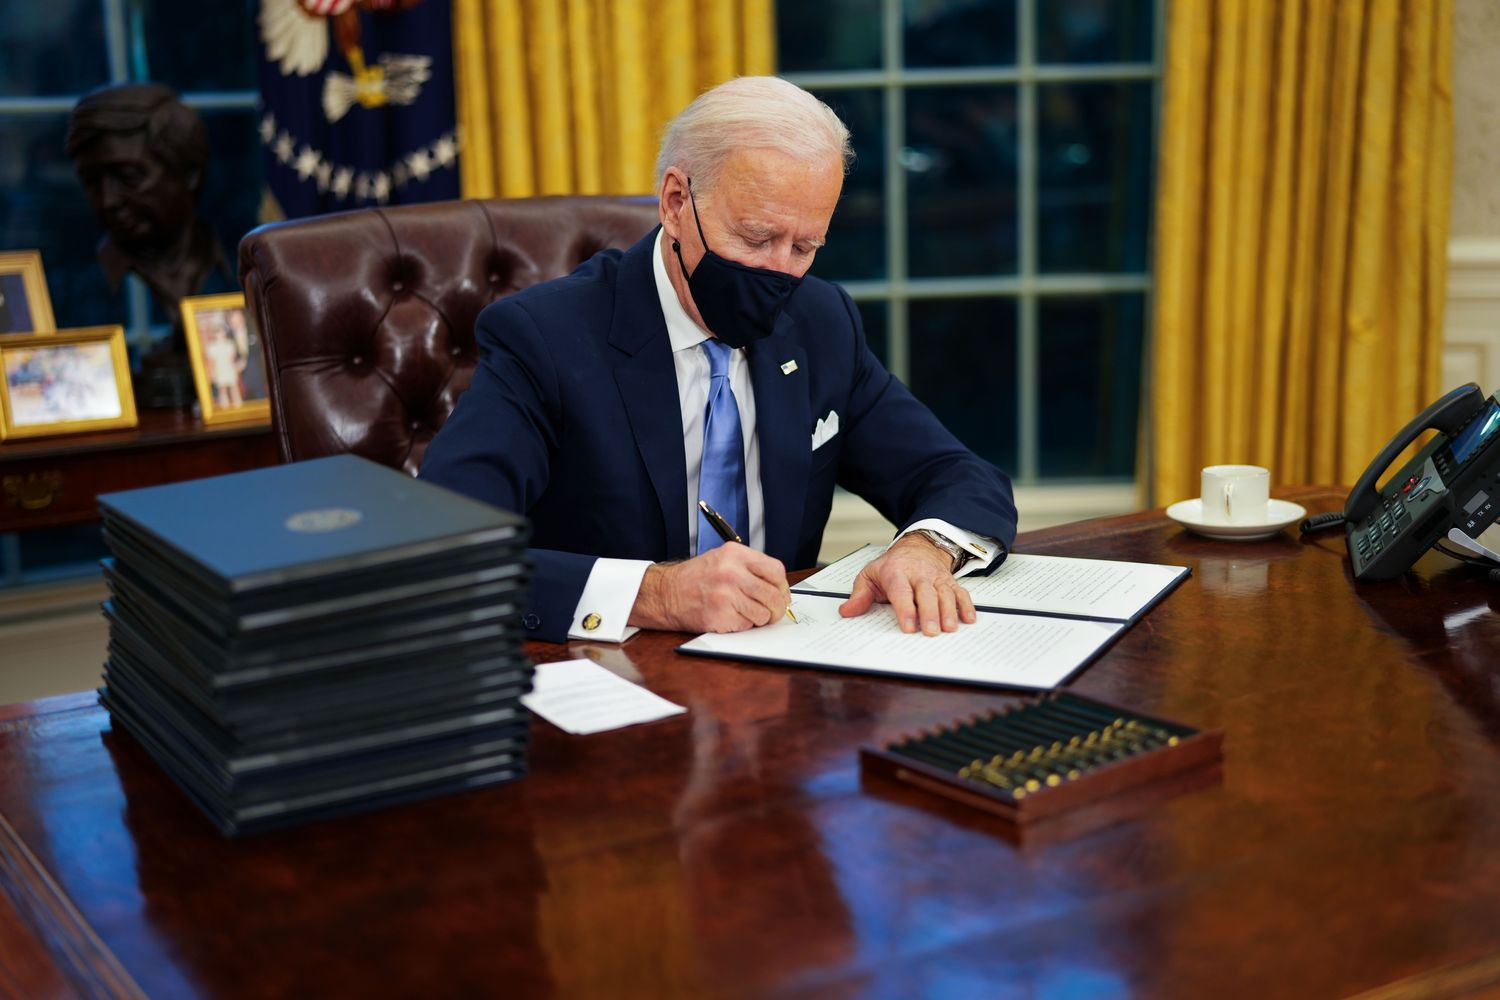 Biden to issue orders nixing Trump's Covid-19 policies